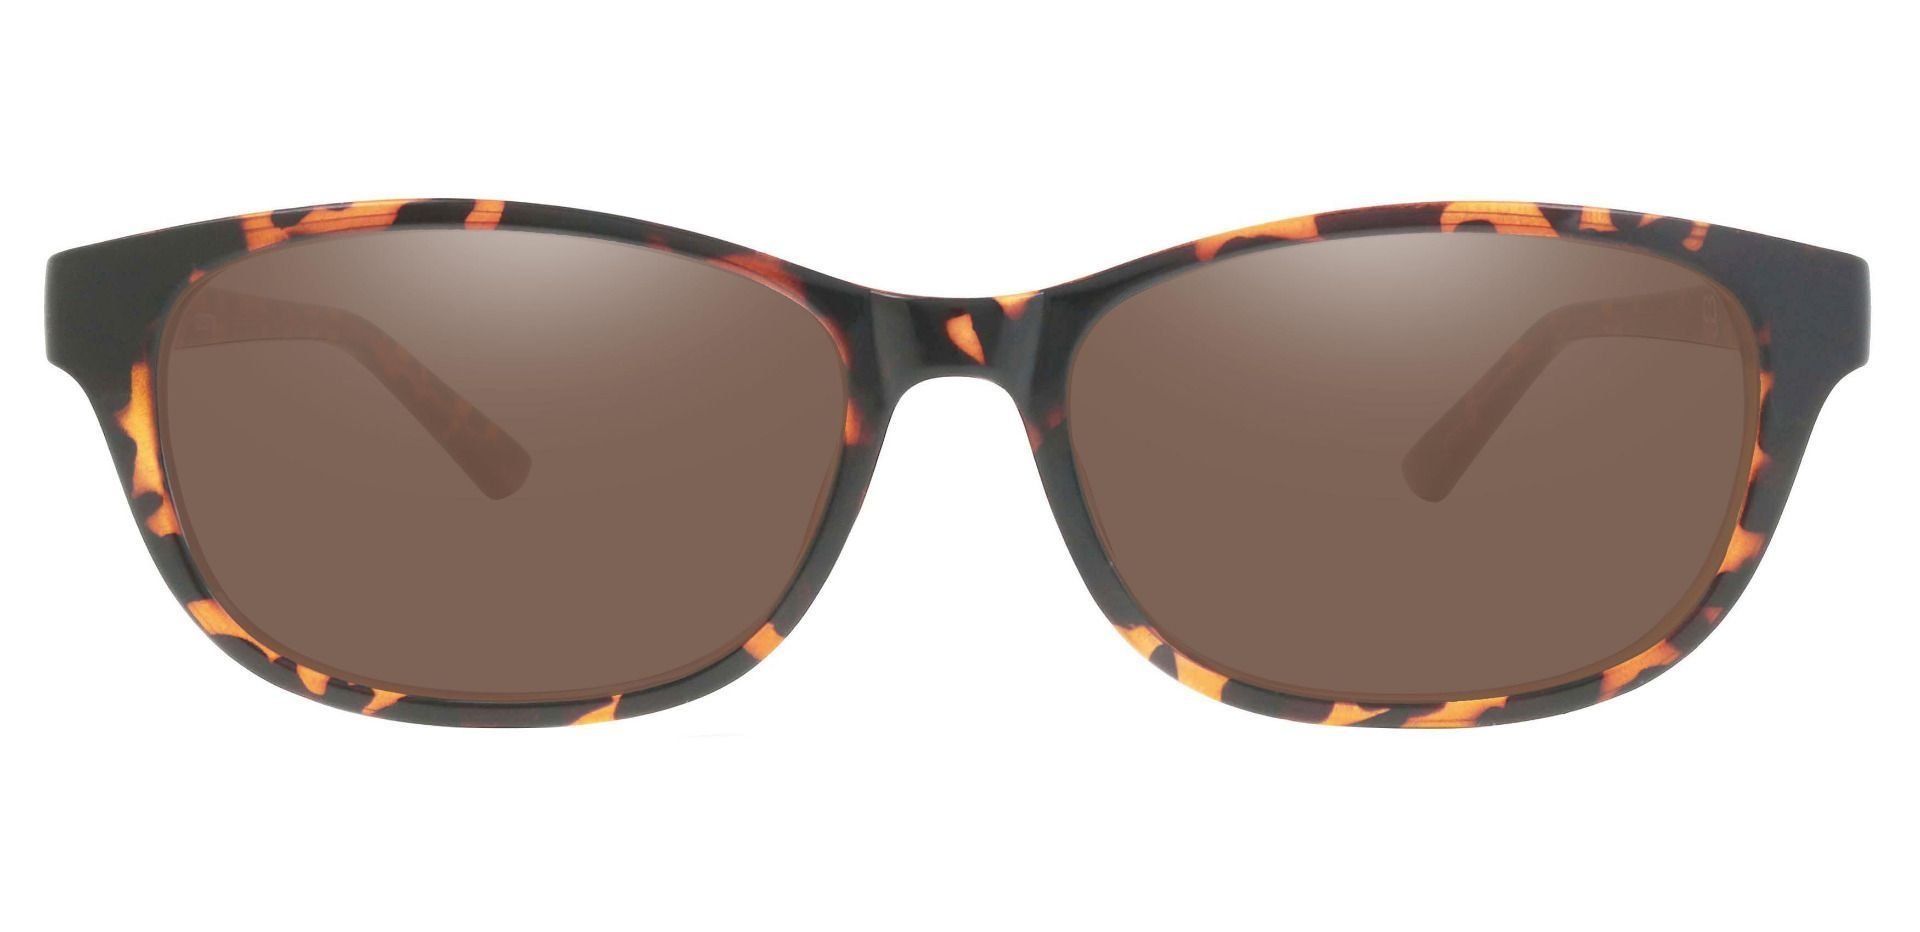 Reyna Classic Square Reading Sunglasses - Tortoise Frame With Brown Lenses